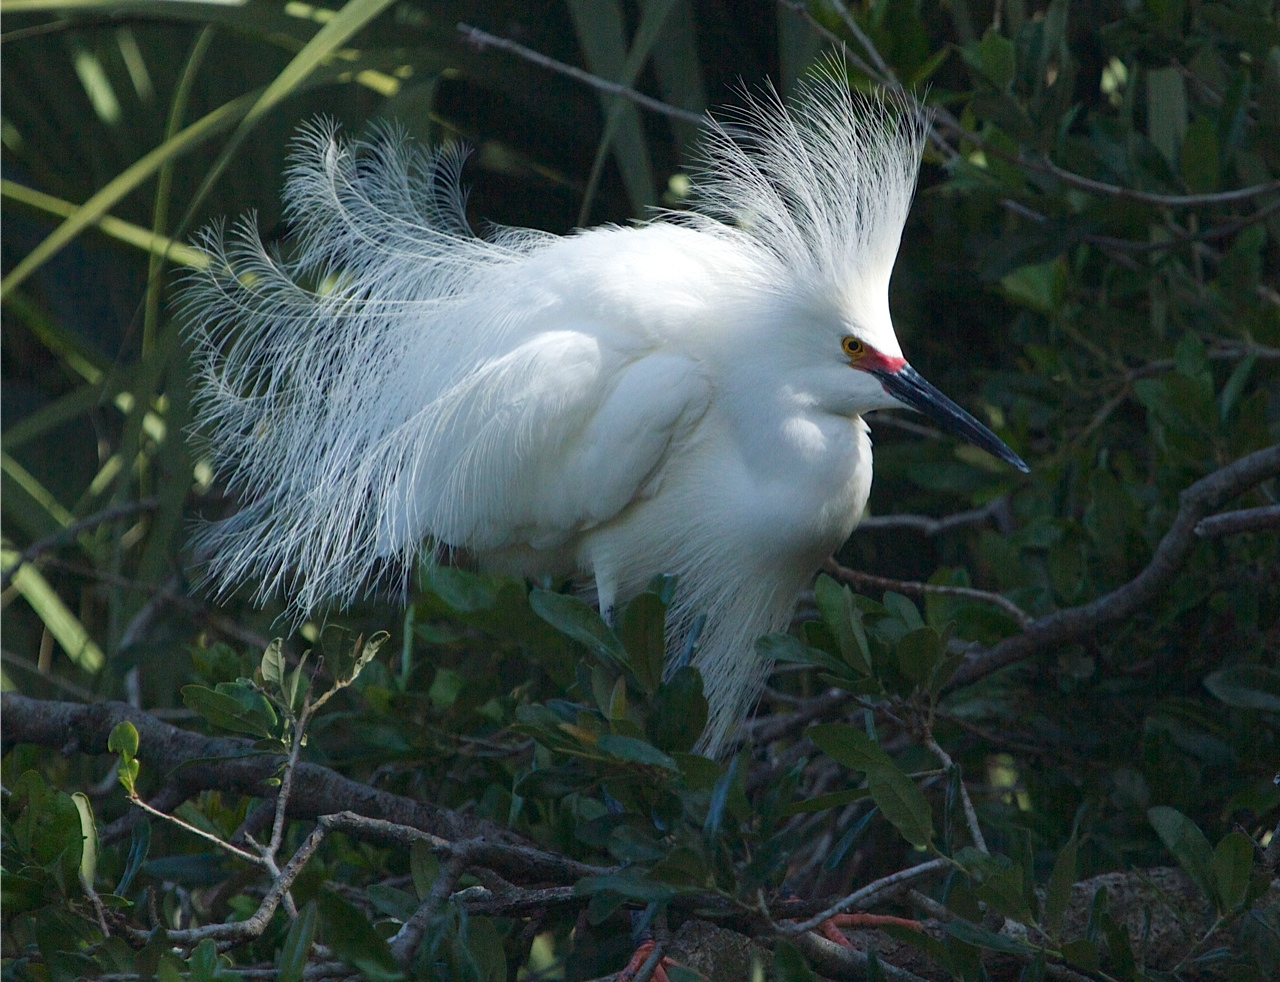 Snowy Egret puffs up when a rival approaches.